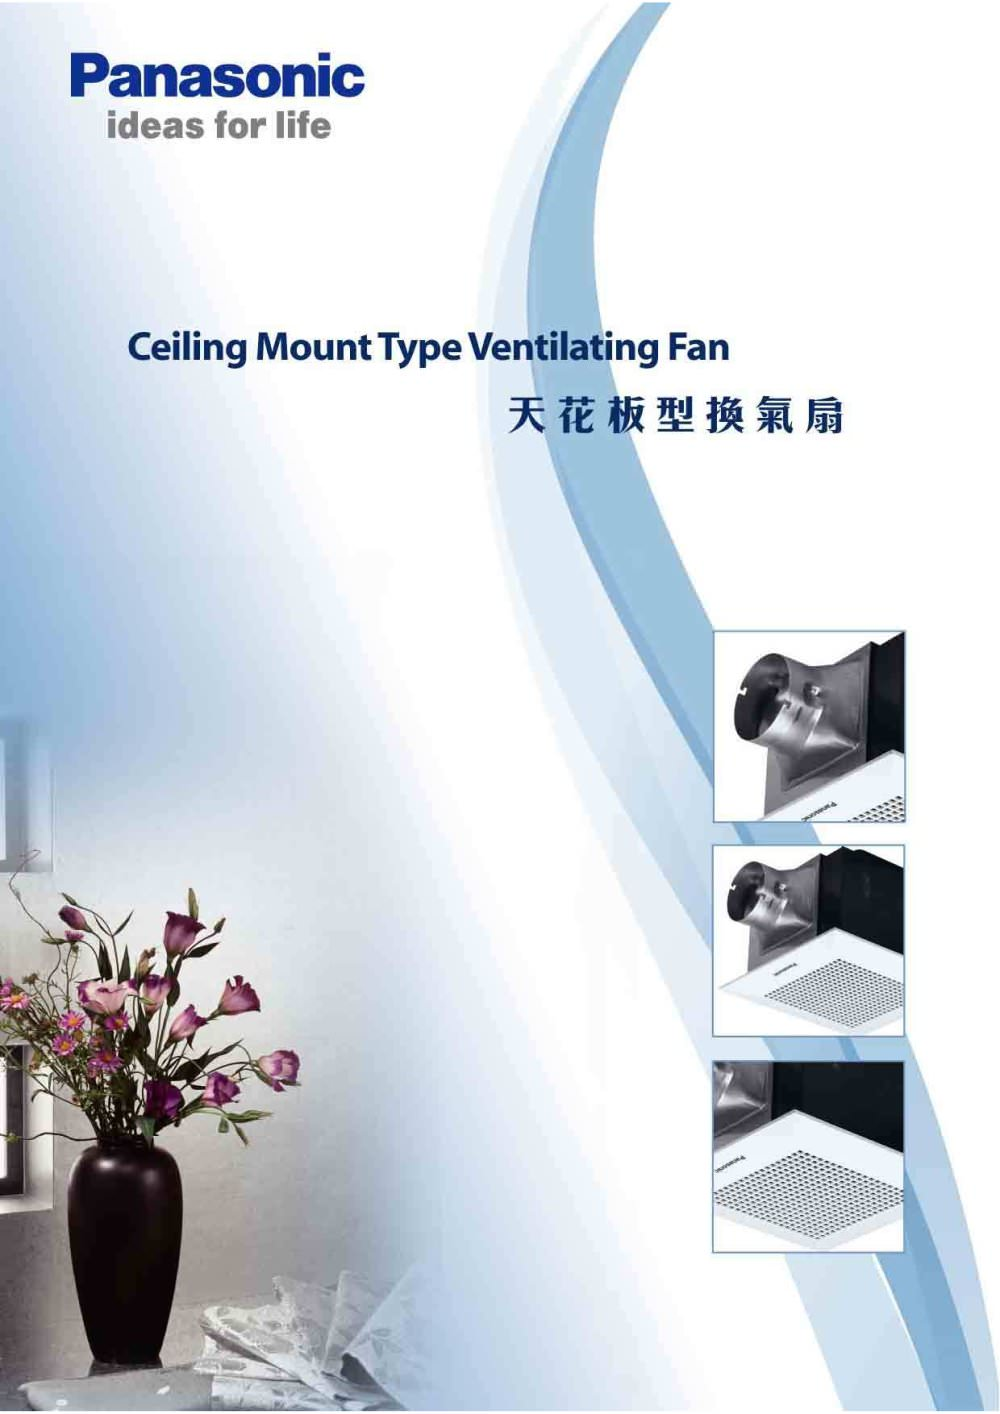 Celling mount type ventilating fan panasonic eco solutions pdf celling mount type ventilating fan 1 20 pages aloadofball Gallery